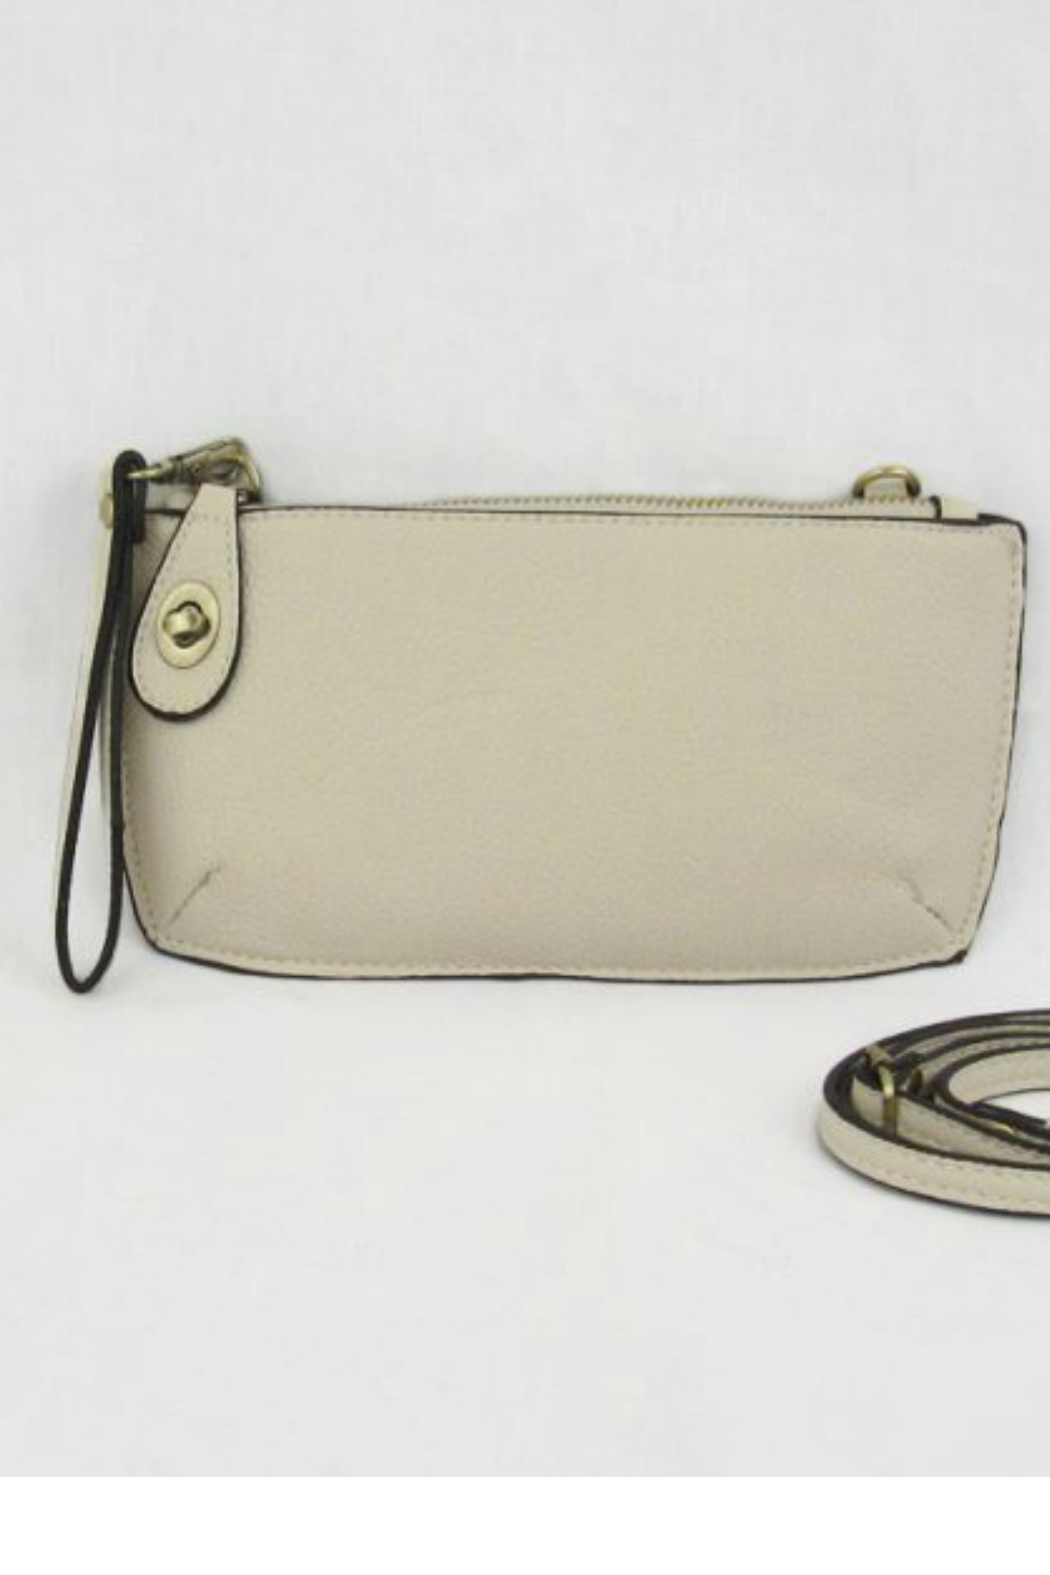 Joy Susan Mini Crossbody Wristlet  clutch - Front Cropped Image